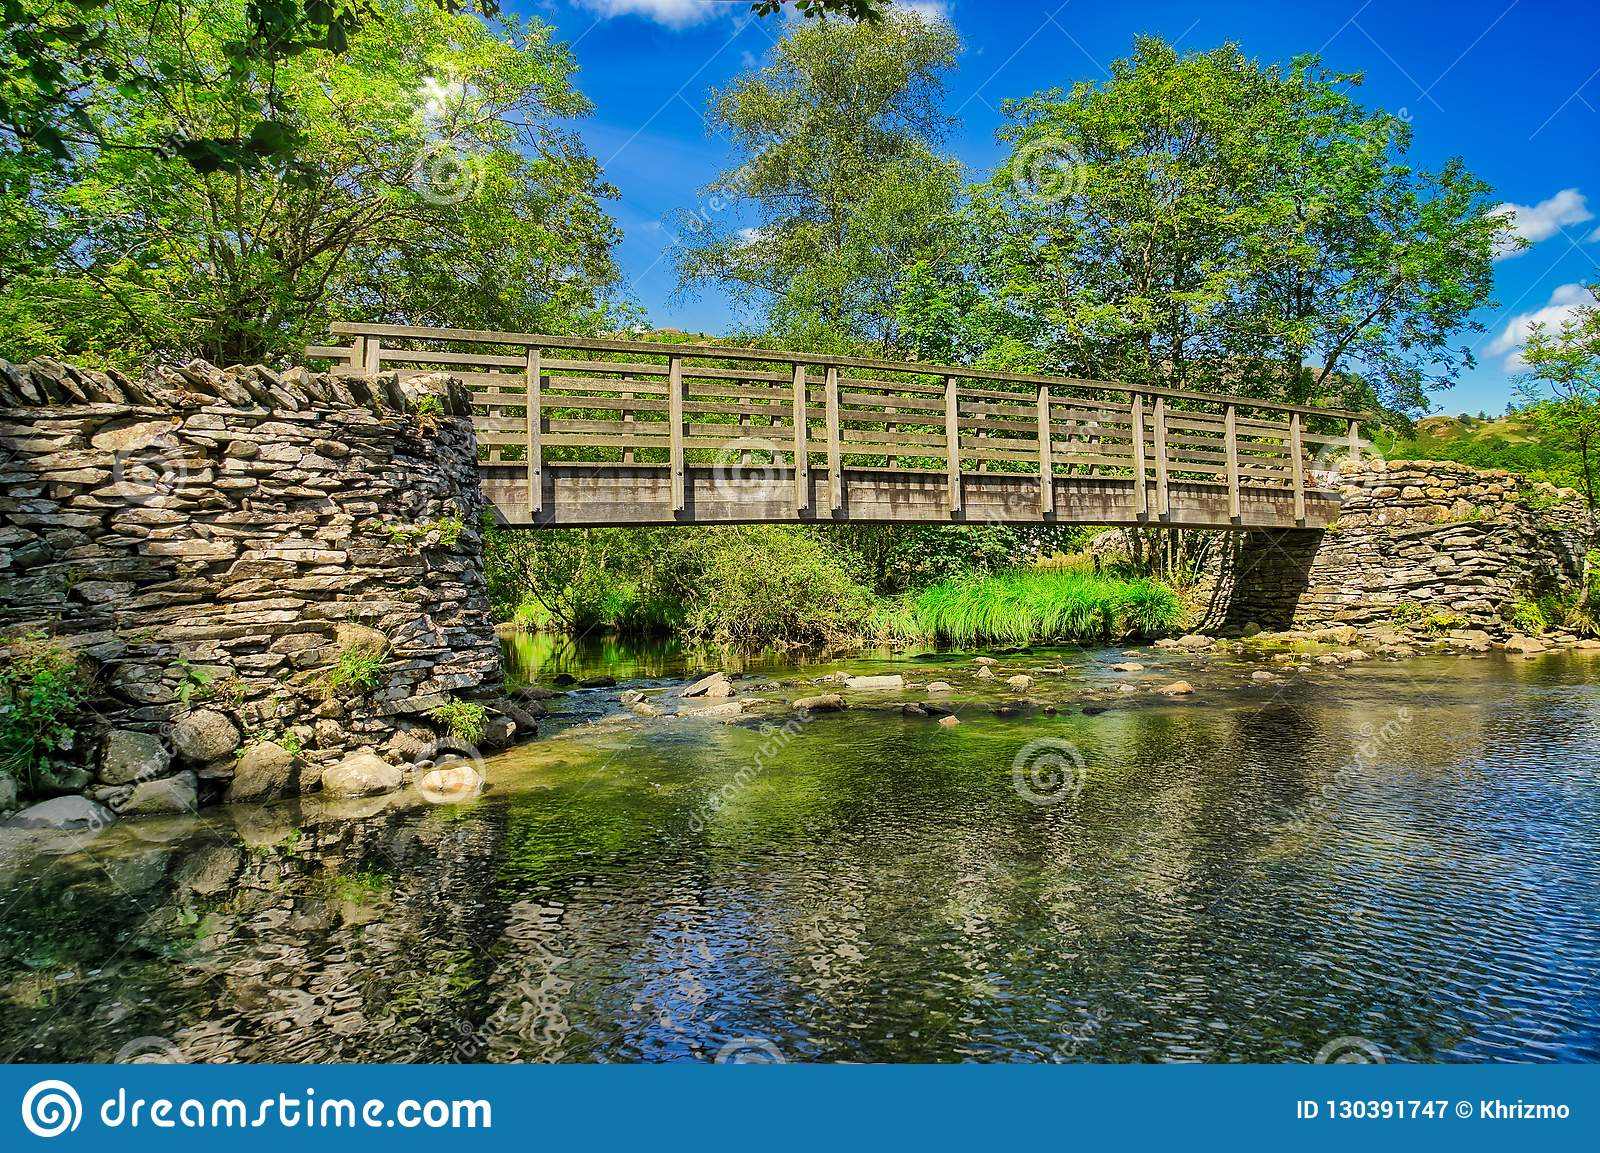 a wooden footbridge crossing a river in the english lake district